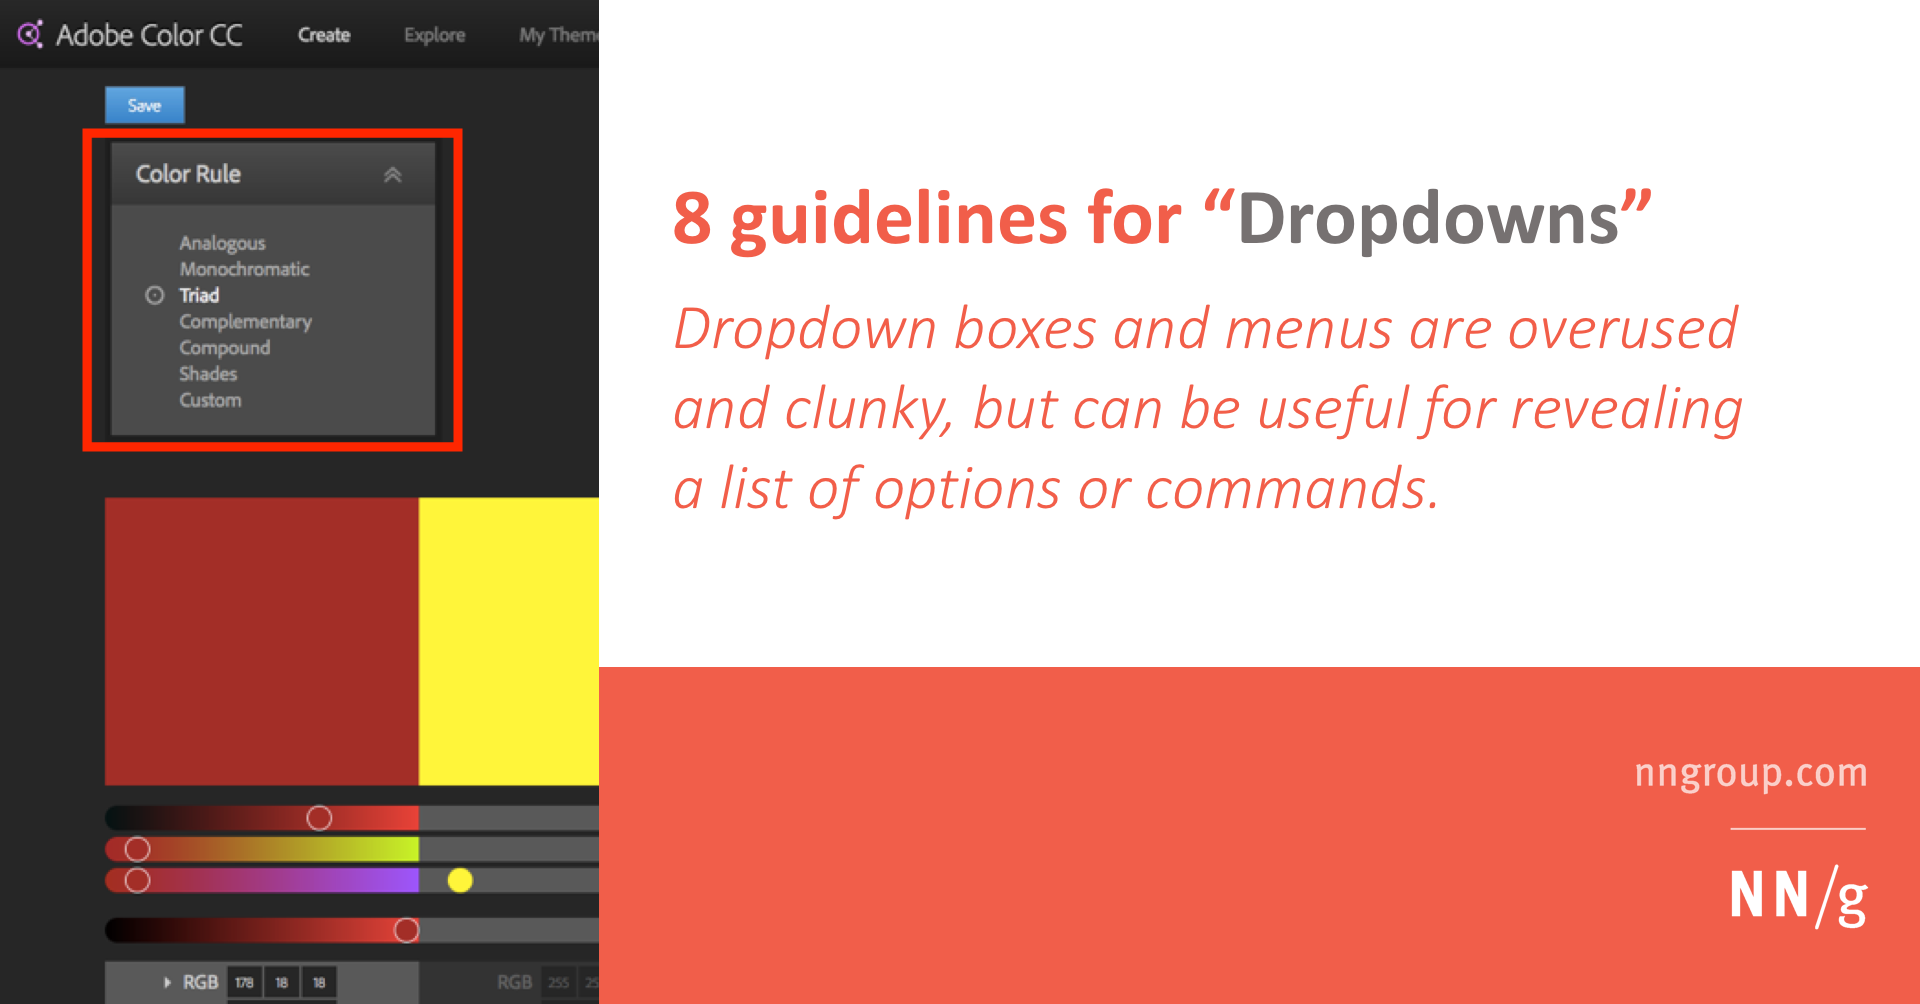 Dropdowns: Design Guidelines